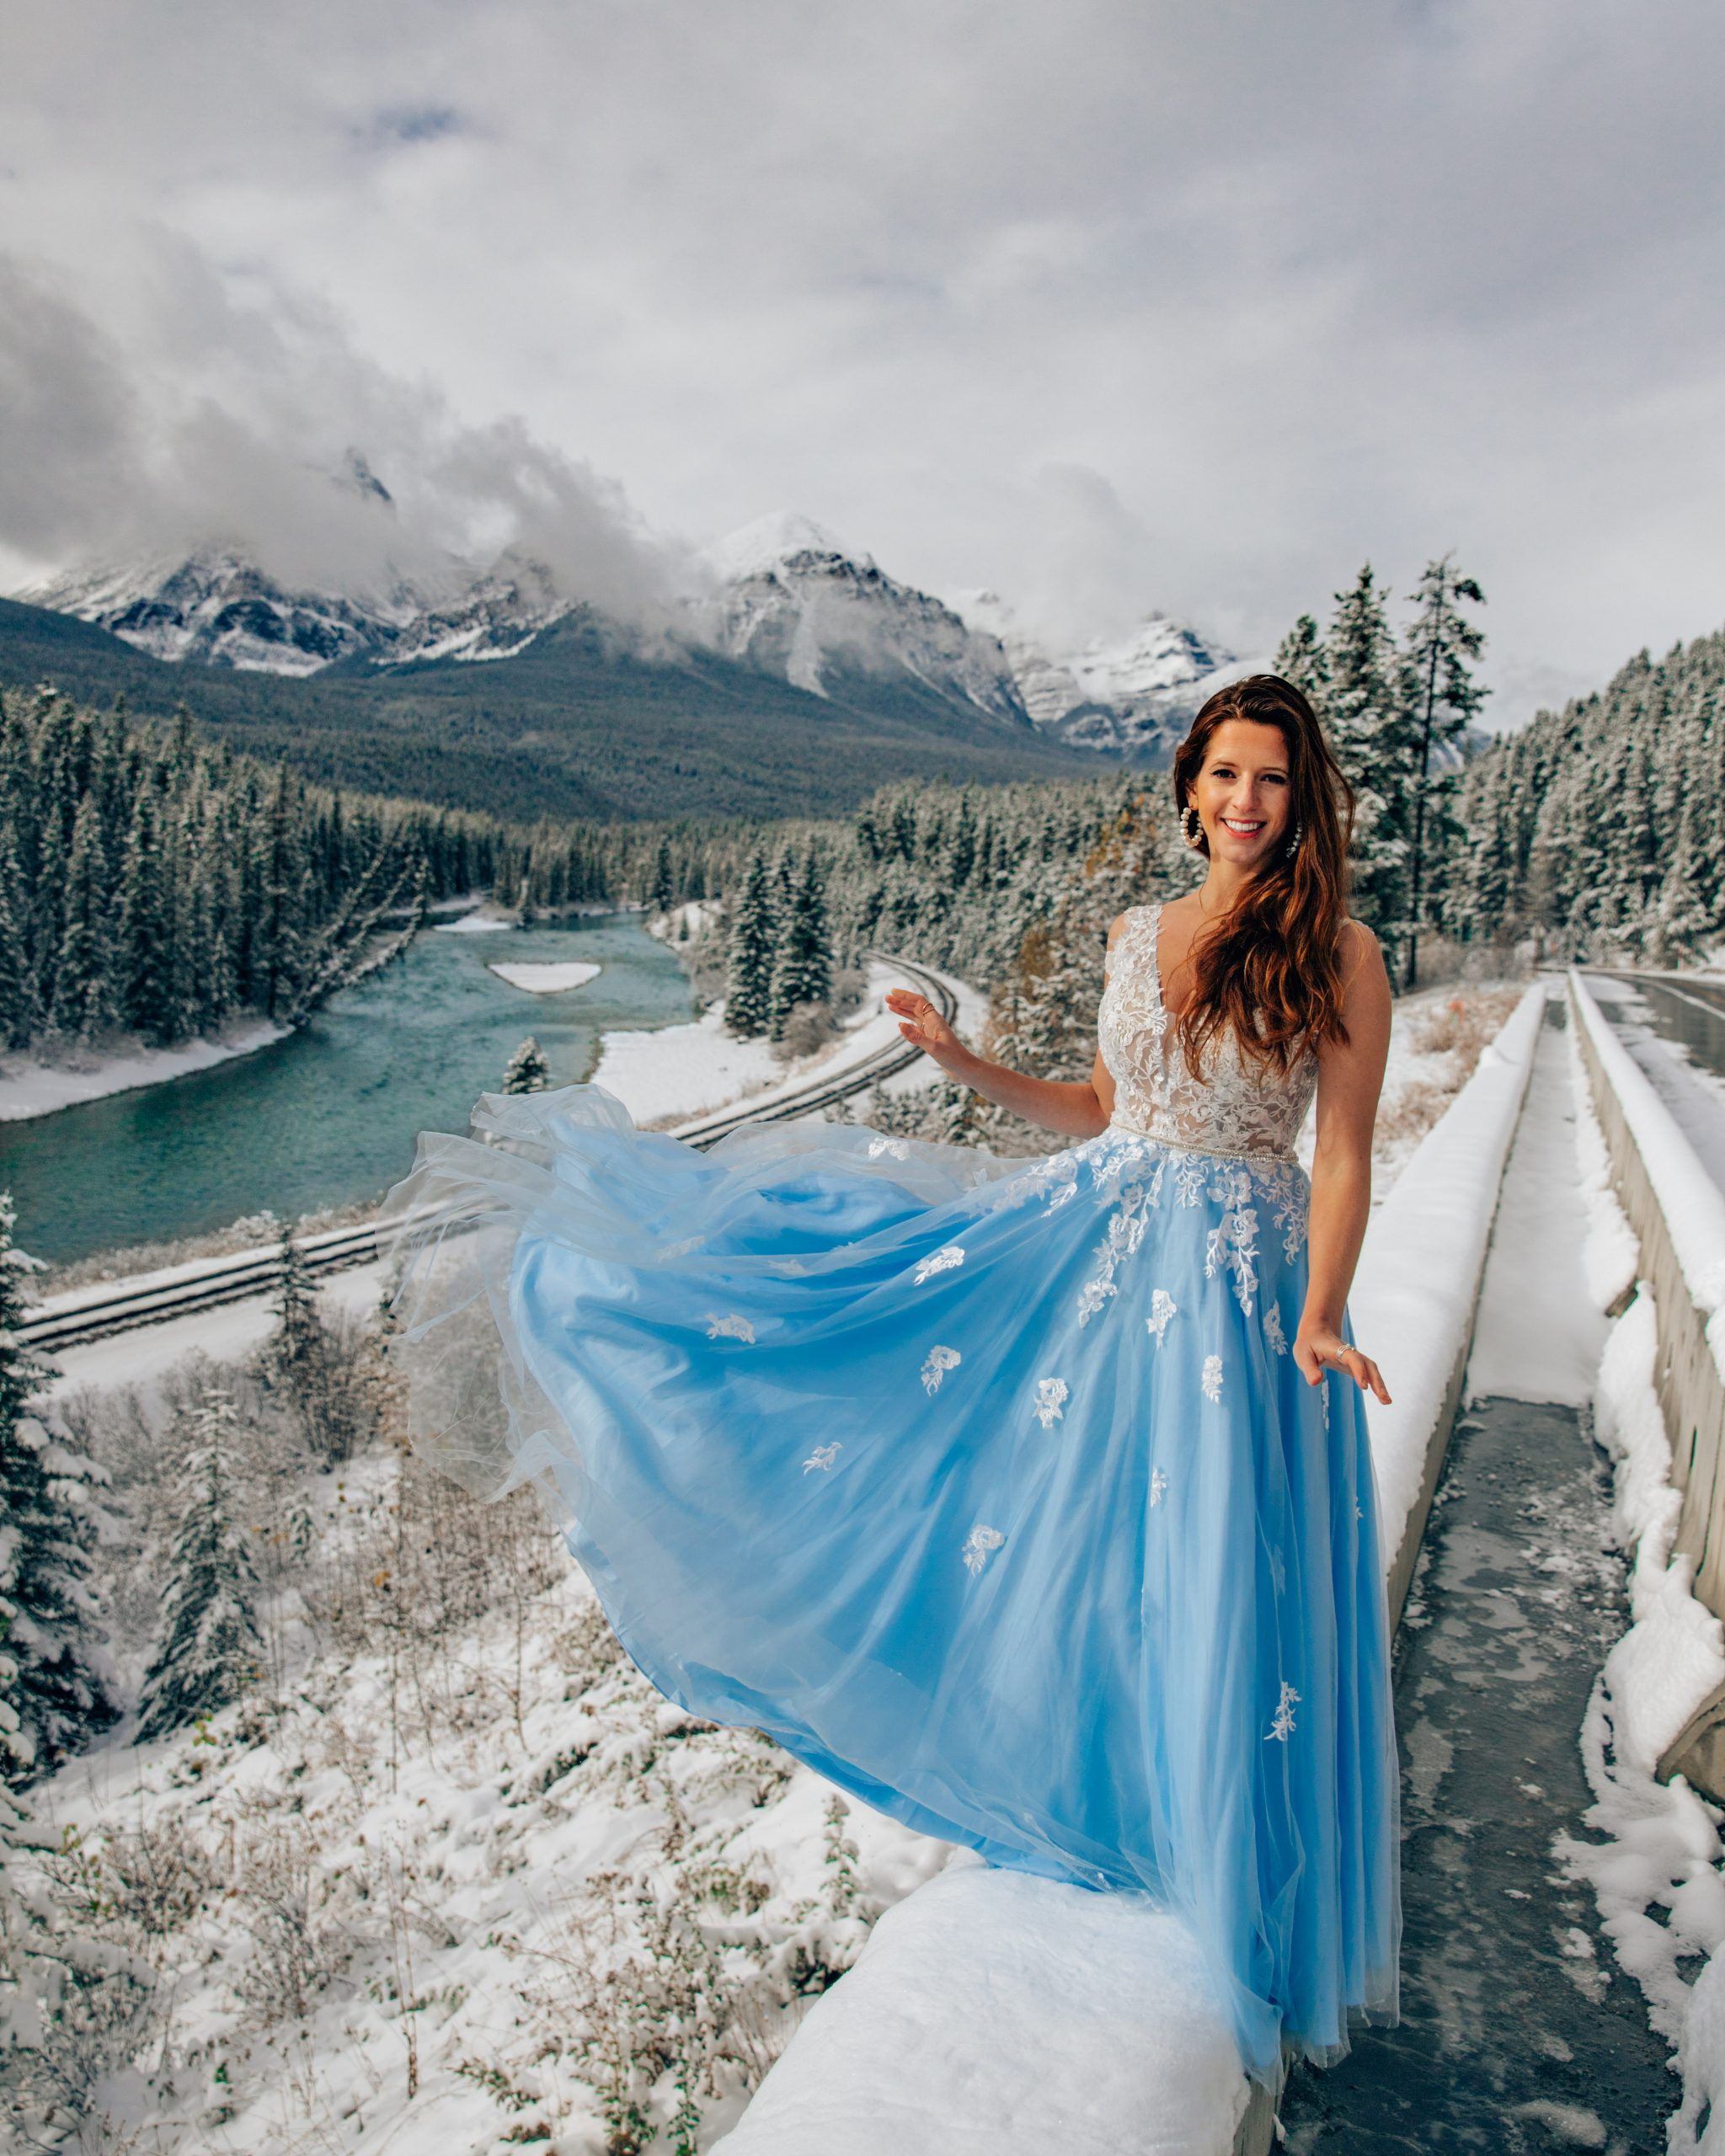 Bettina in Princess Dress at Morant's Curve in Banff National Park